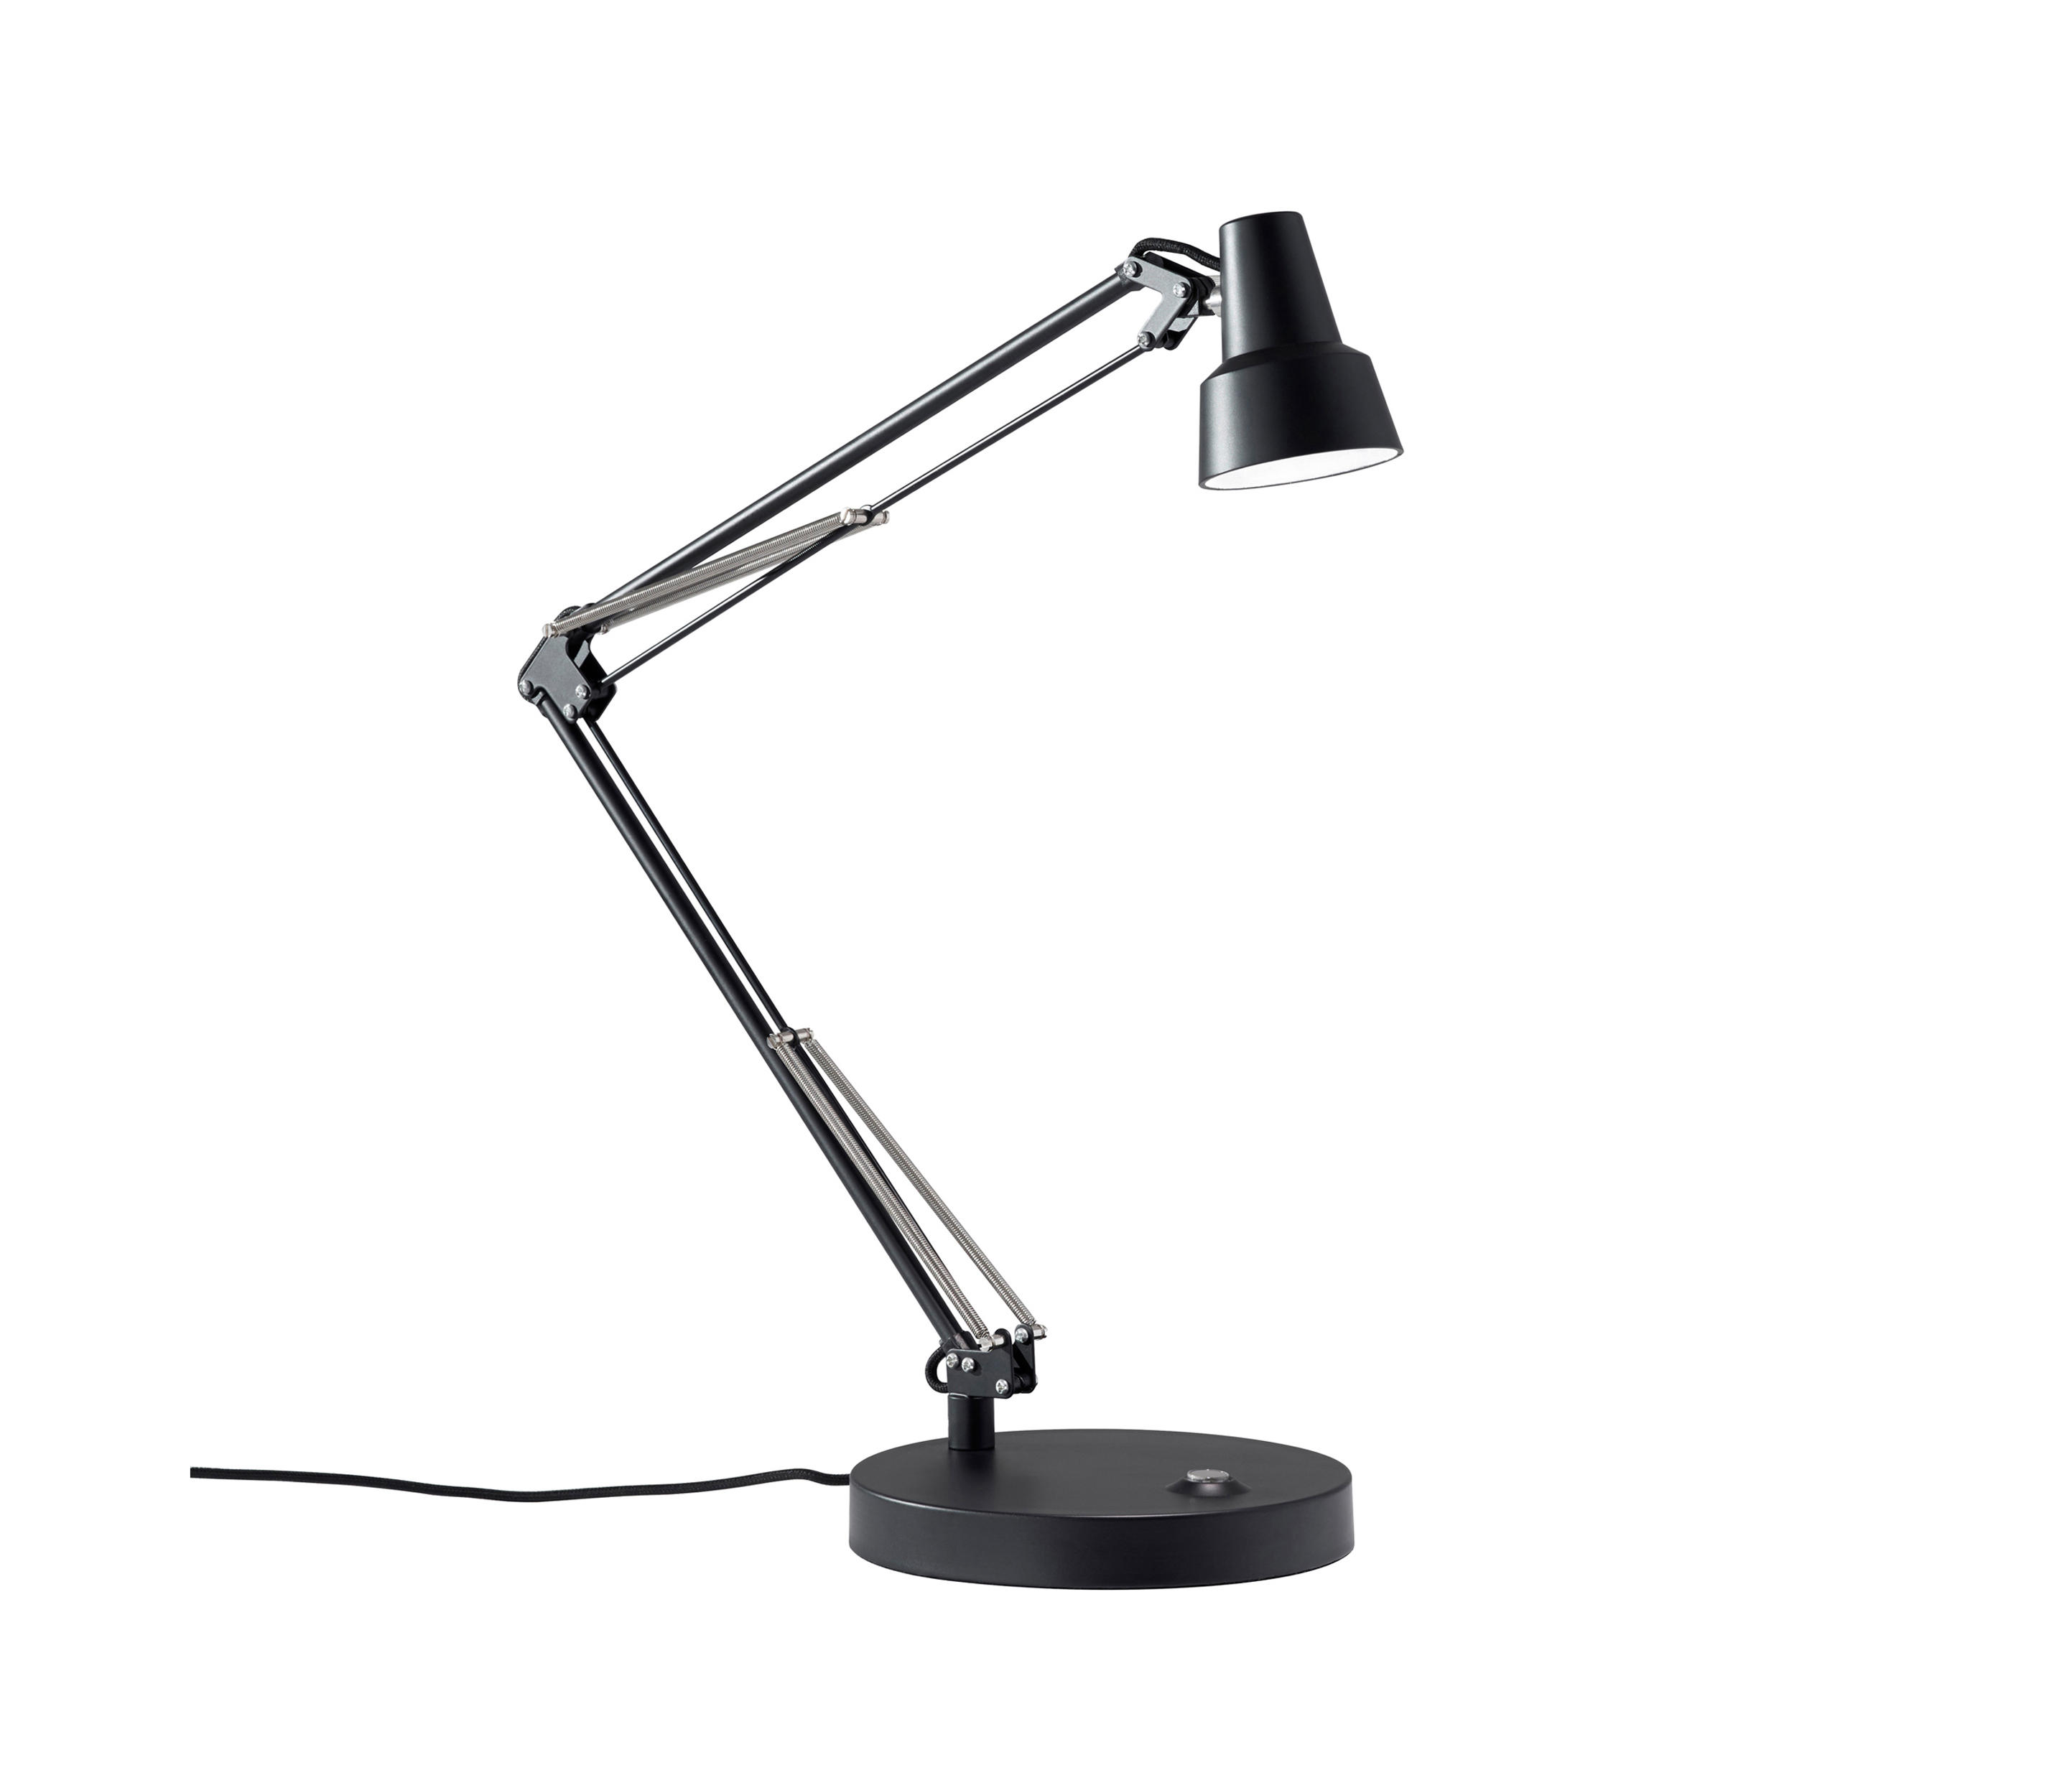 pdx lamp led lighting reviews vonhaus desk folding wayfair